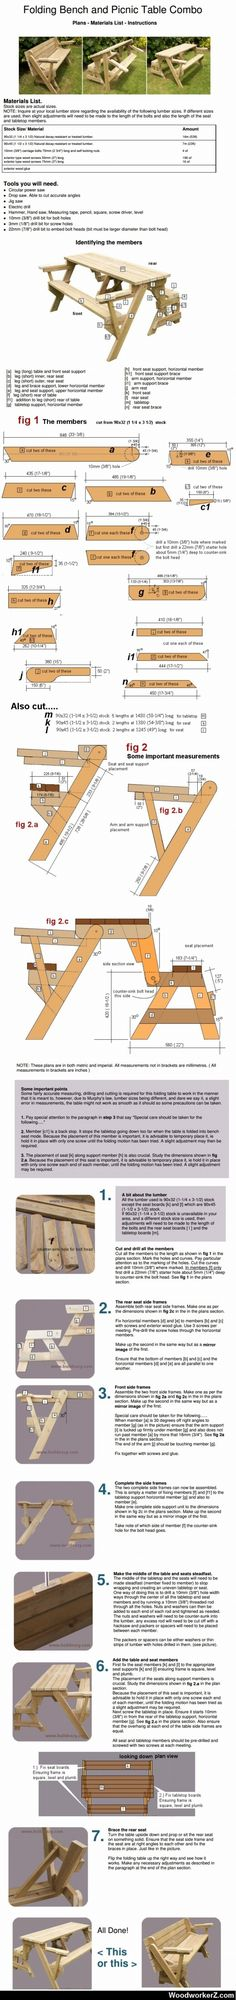 Decor Hacks : Folding Bench and Picnic Table Combo Decor Hacks: Klappbank und Picknicktisch Combo -L Outdoor Projects, Home Projects, Woodworking Bench, Woodworking Projects, Learn Woodworking, Picnic Table Bench, Pinic Table, Chair Bench, Folding Picnic Table Plans